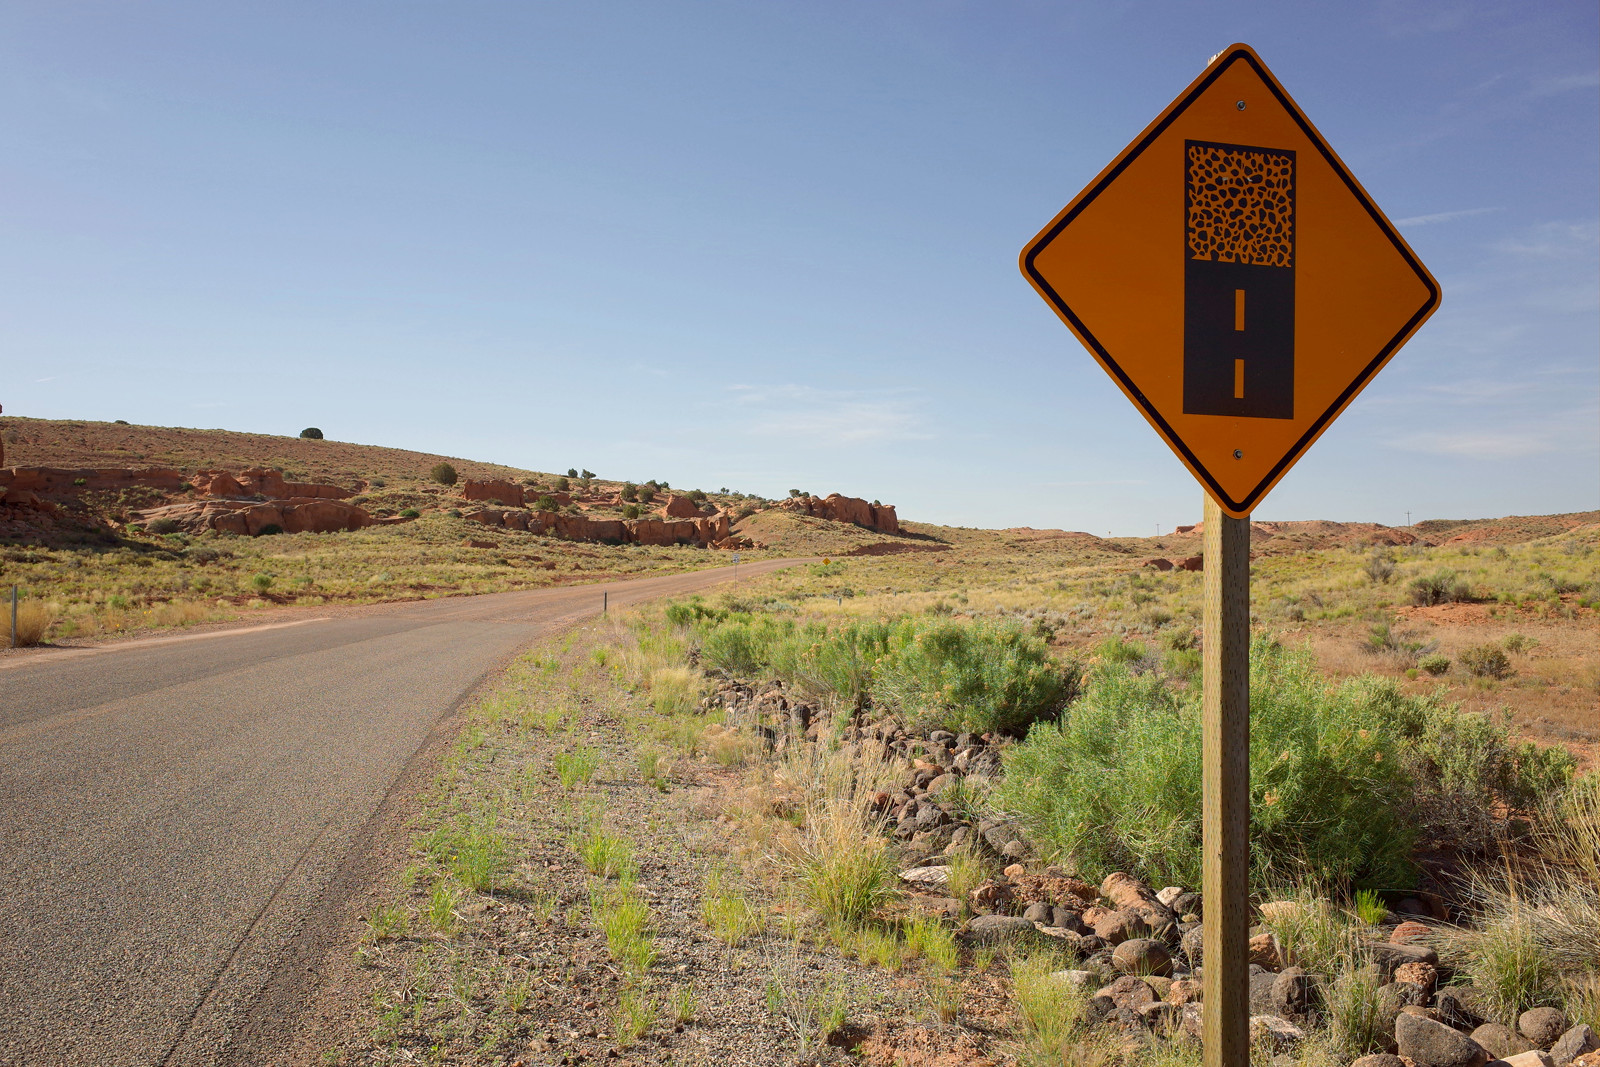 'Pavement ends, dirt road begins' sign along Notom-Bullfrog Road in Capitol Reef National Park